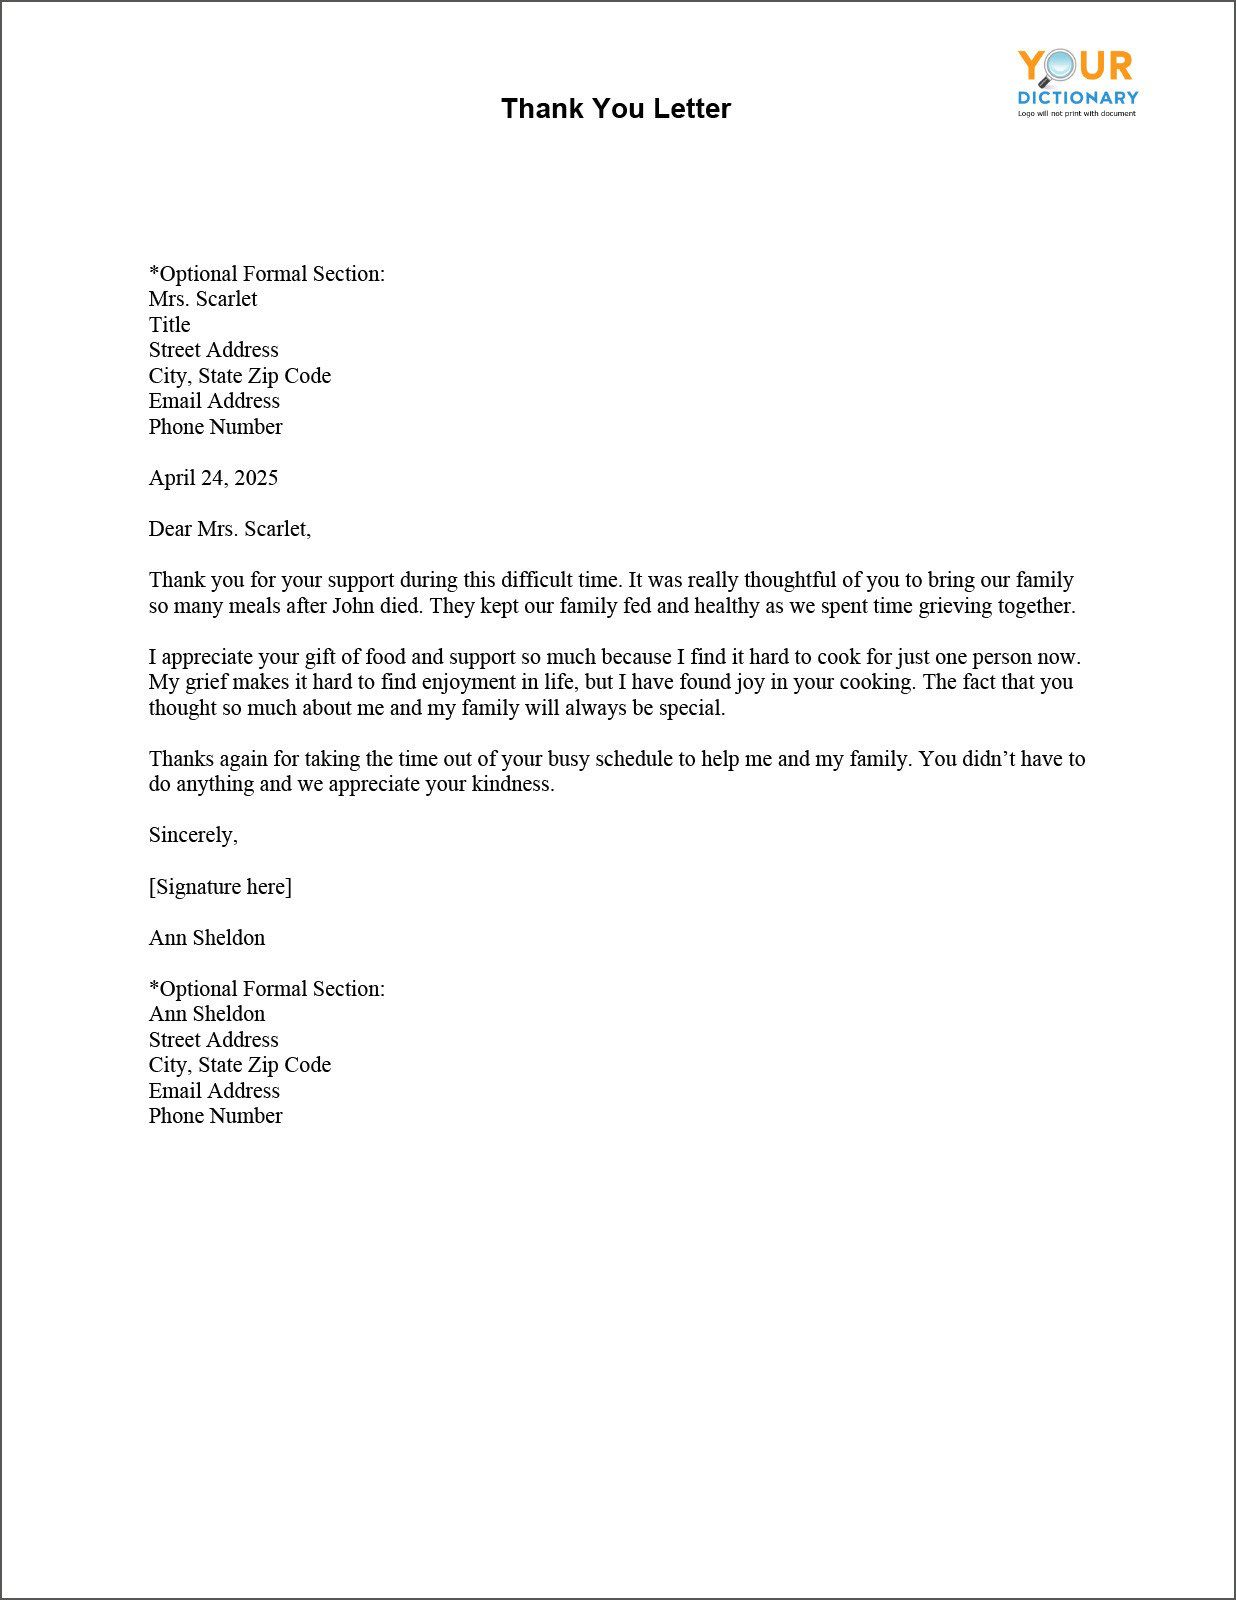 003 Shocking Thank You Letter Template Picture  Templates Pdf Sample For Gift Received Book DonationFull